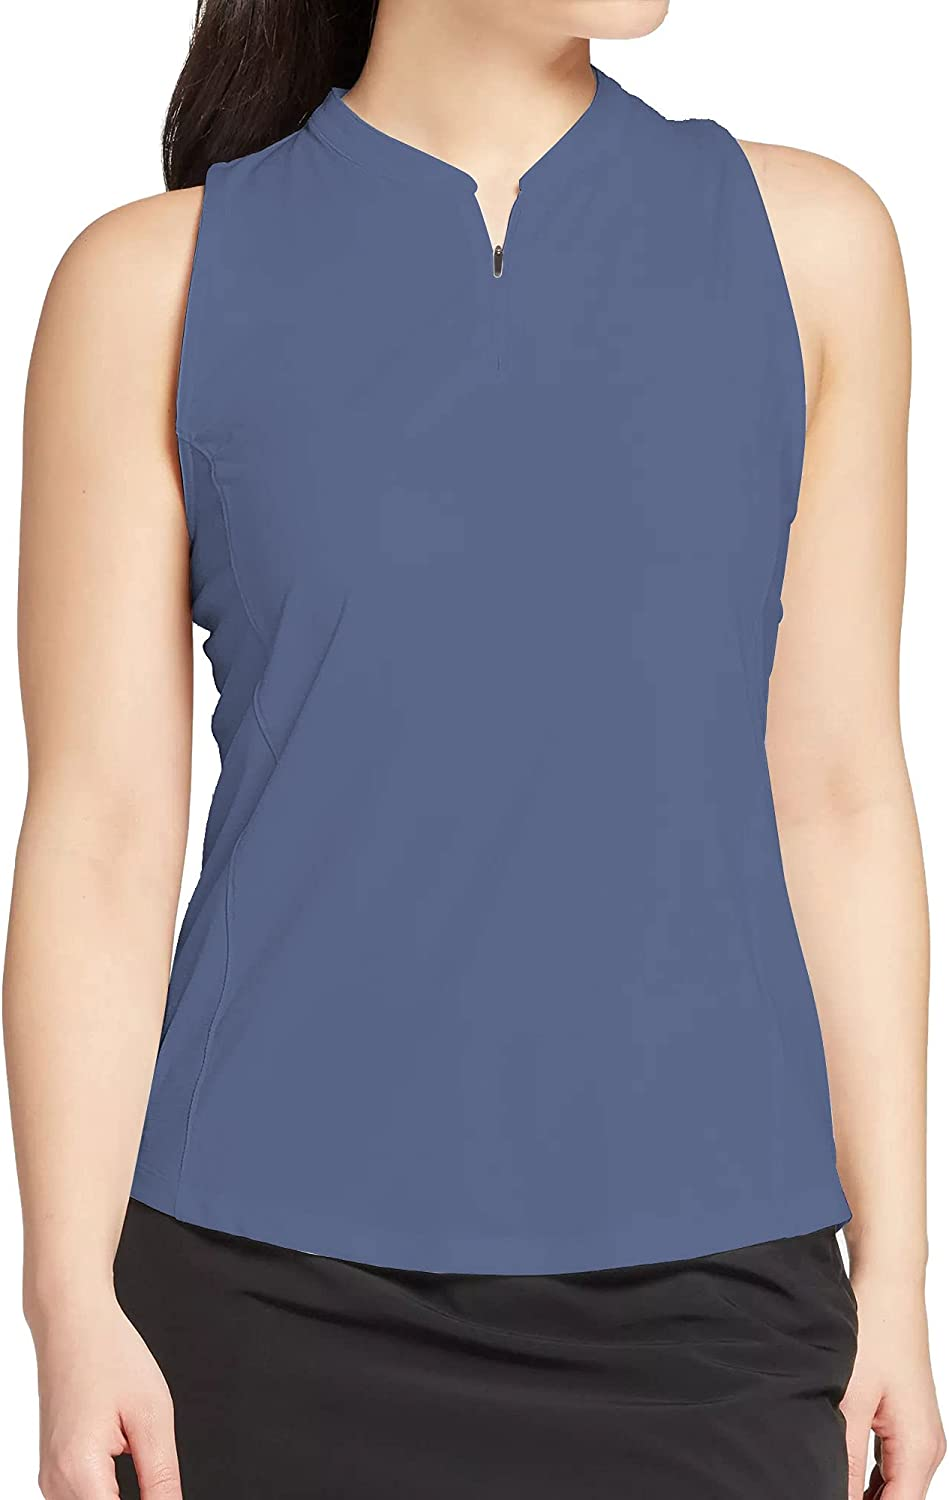 Womens Sleeveless Collarless Golf Polo Zipper Quick 2021 autumn and winter new - with Max 69% OFF Shirt